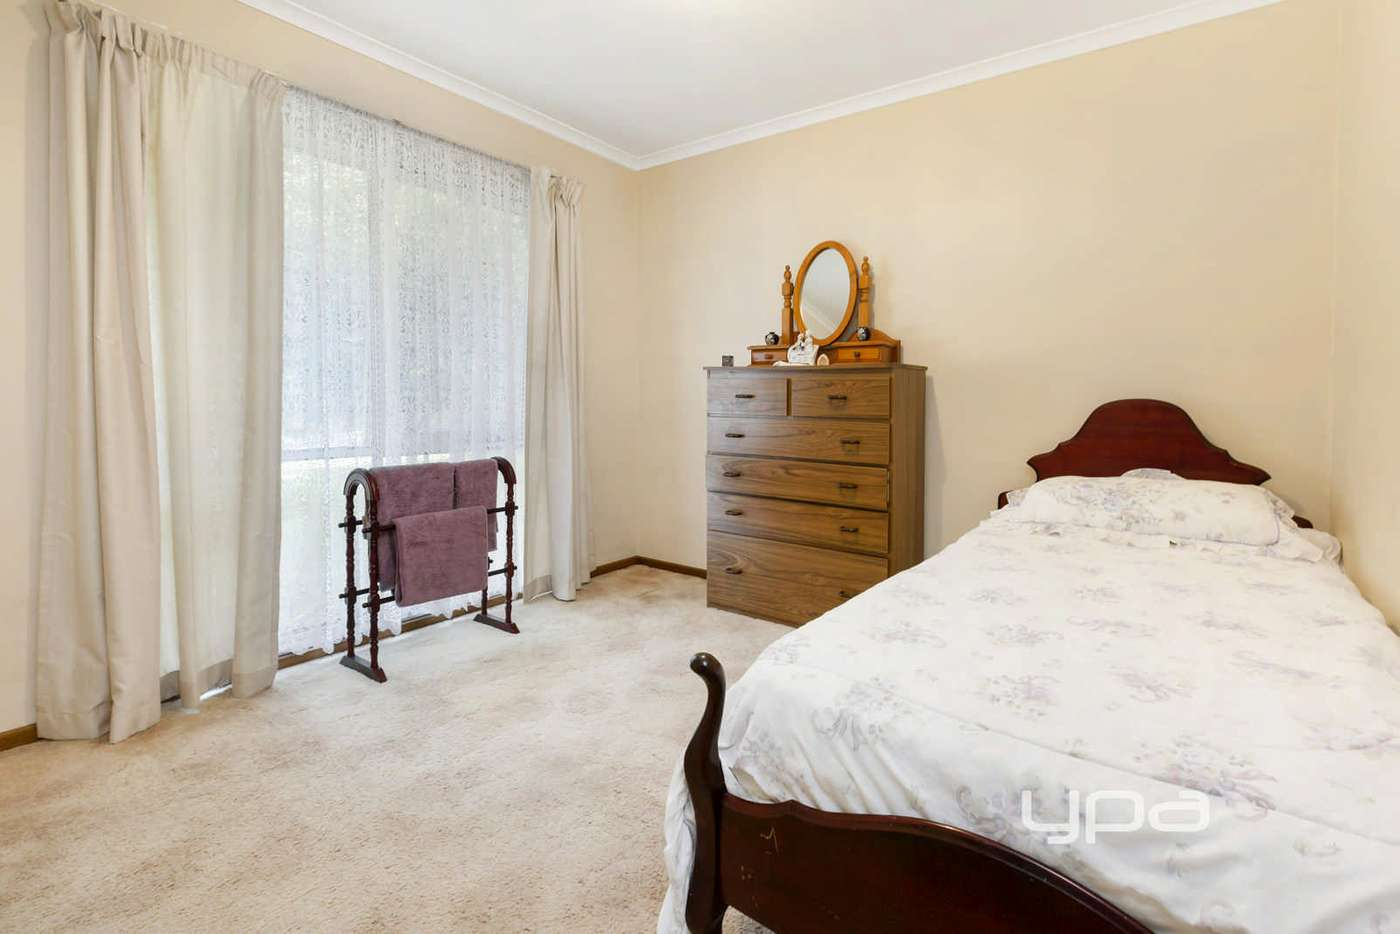 Sixth view of Homely unit listing, 2/8 Francis Street, Dromana VIC 3936